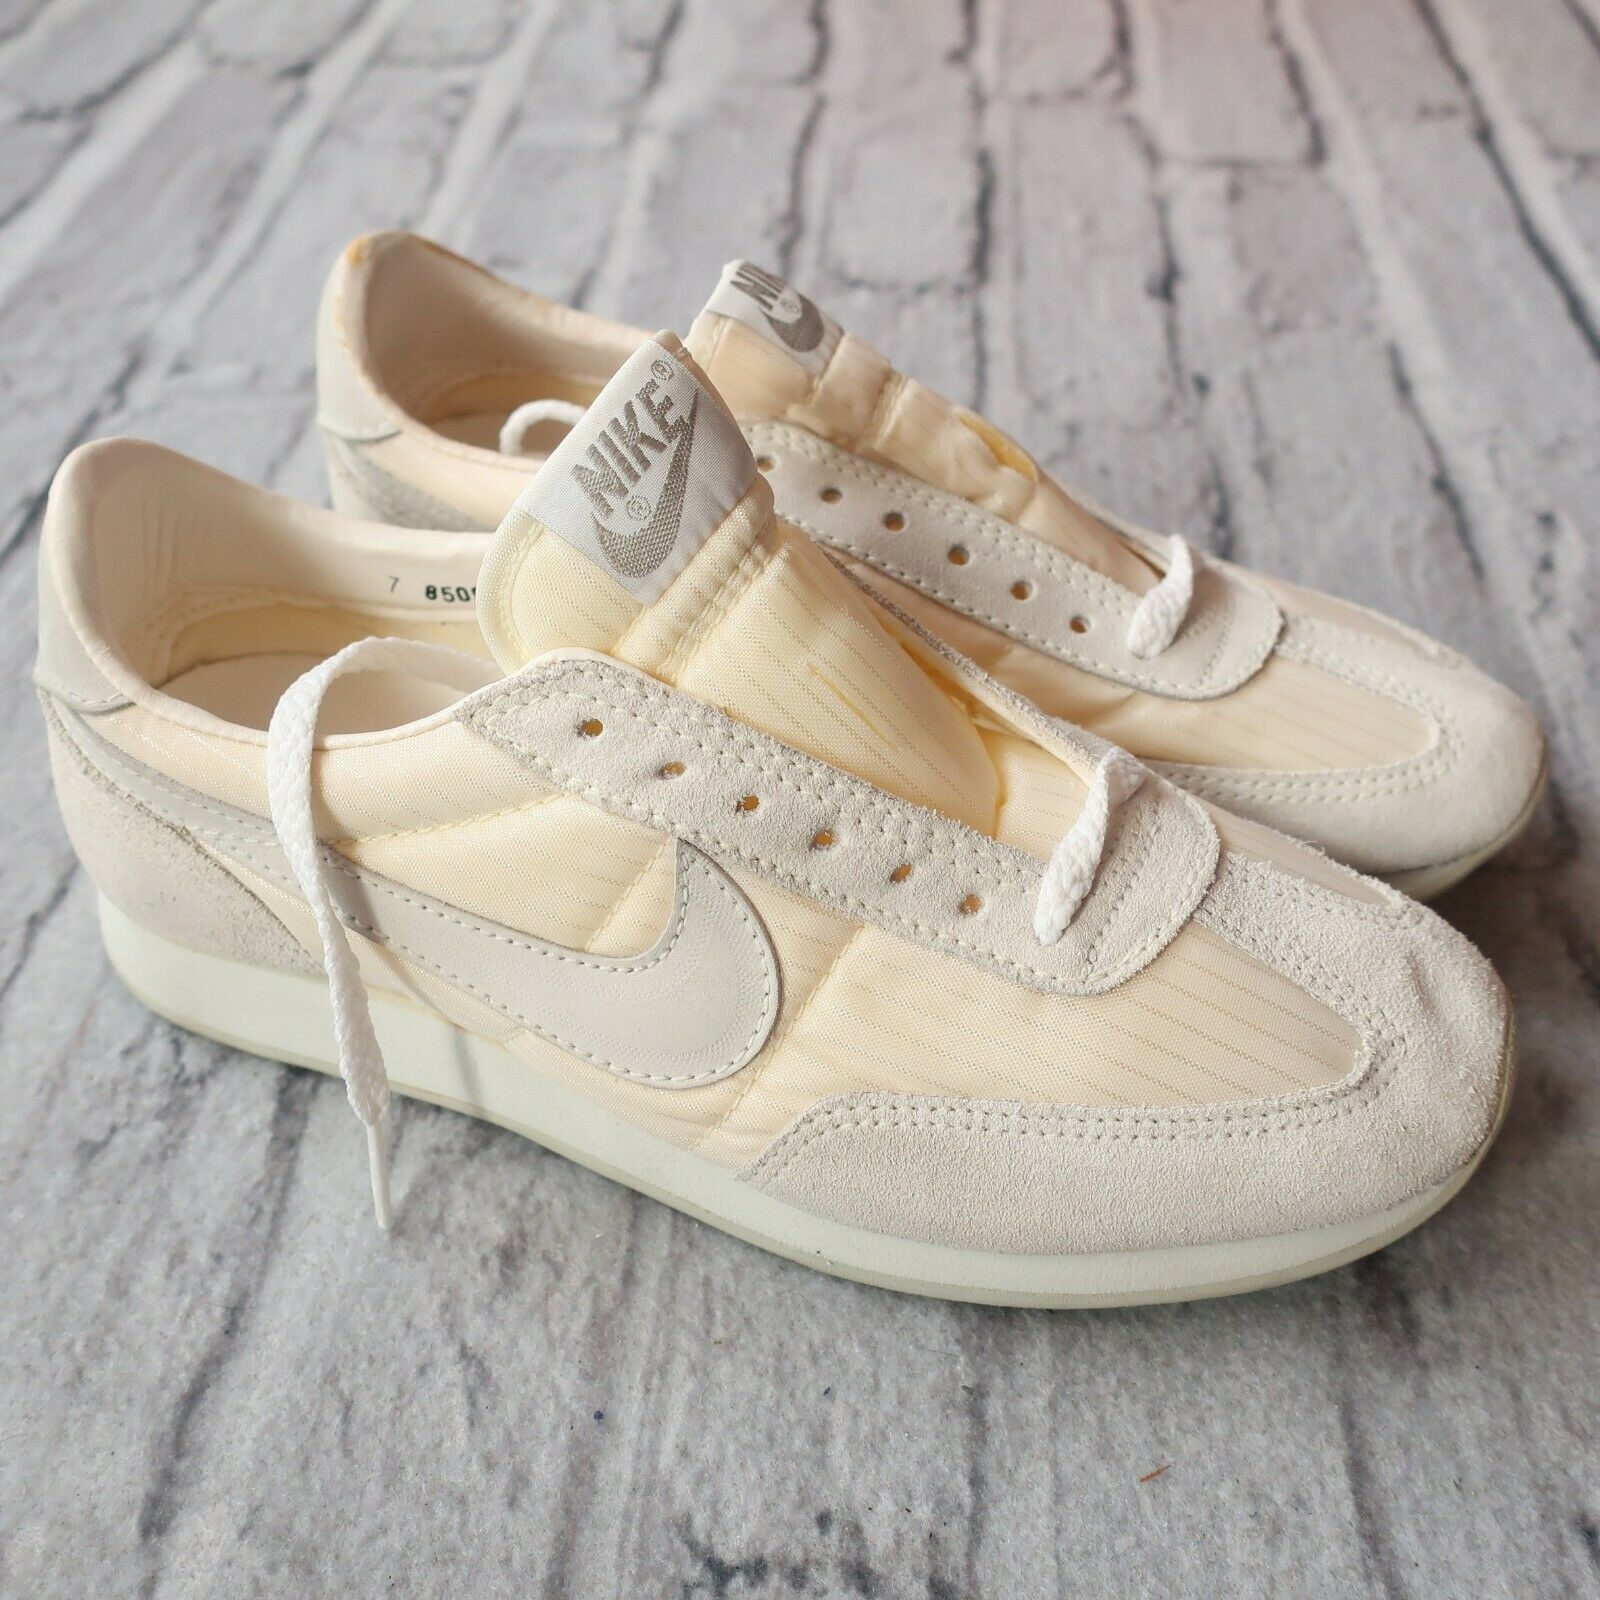 Vintage OG New 1985 Nike Echelon shoes 2179 Womens Size 7